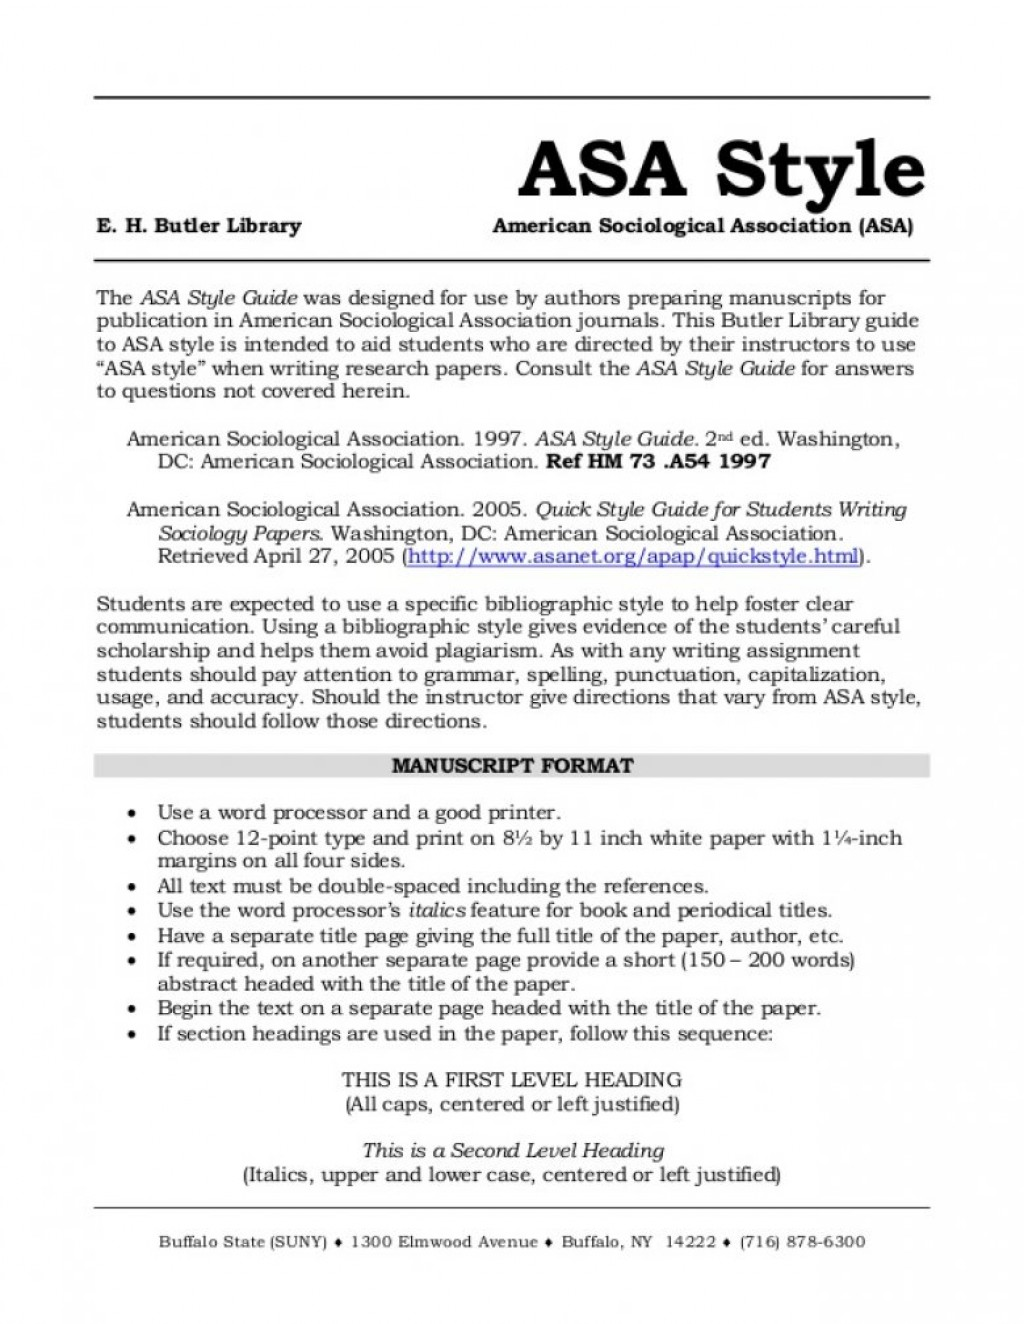 023 Asa Format Papers Essay Remarkable Reference Example Citation Website For Journal Article Large